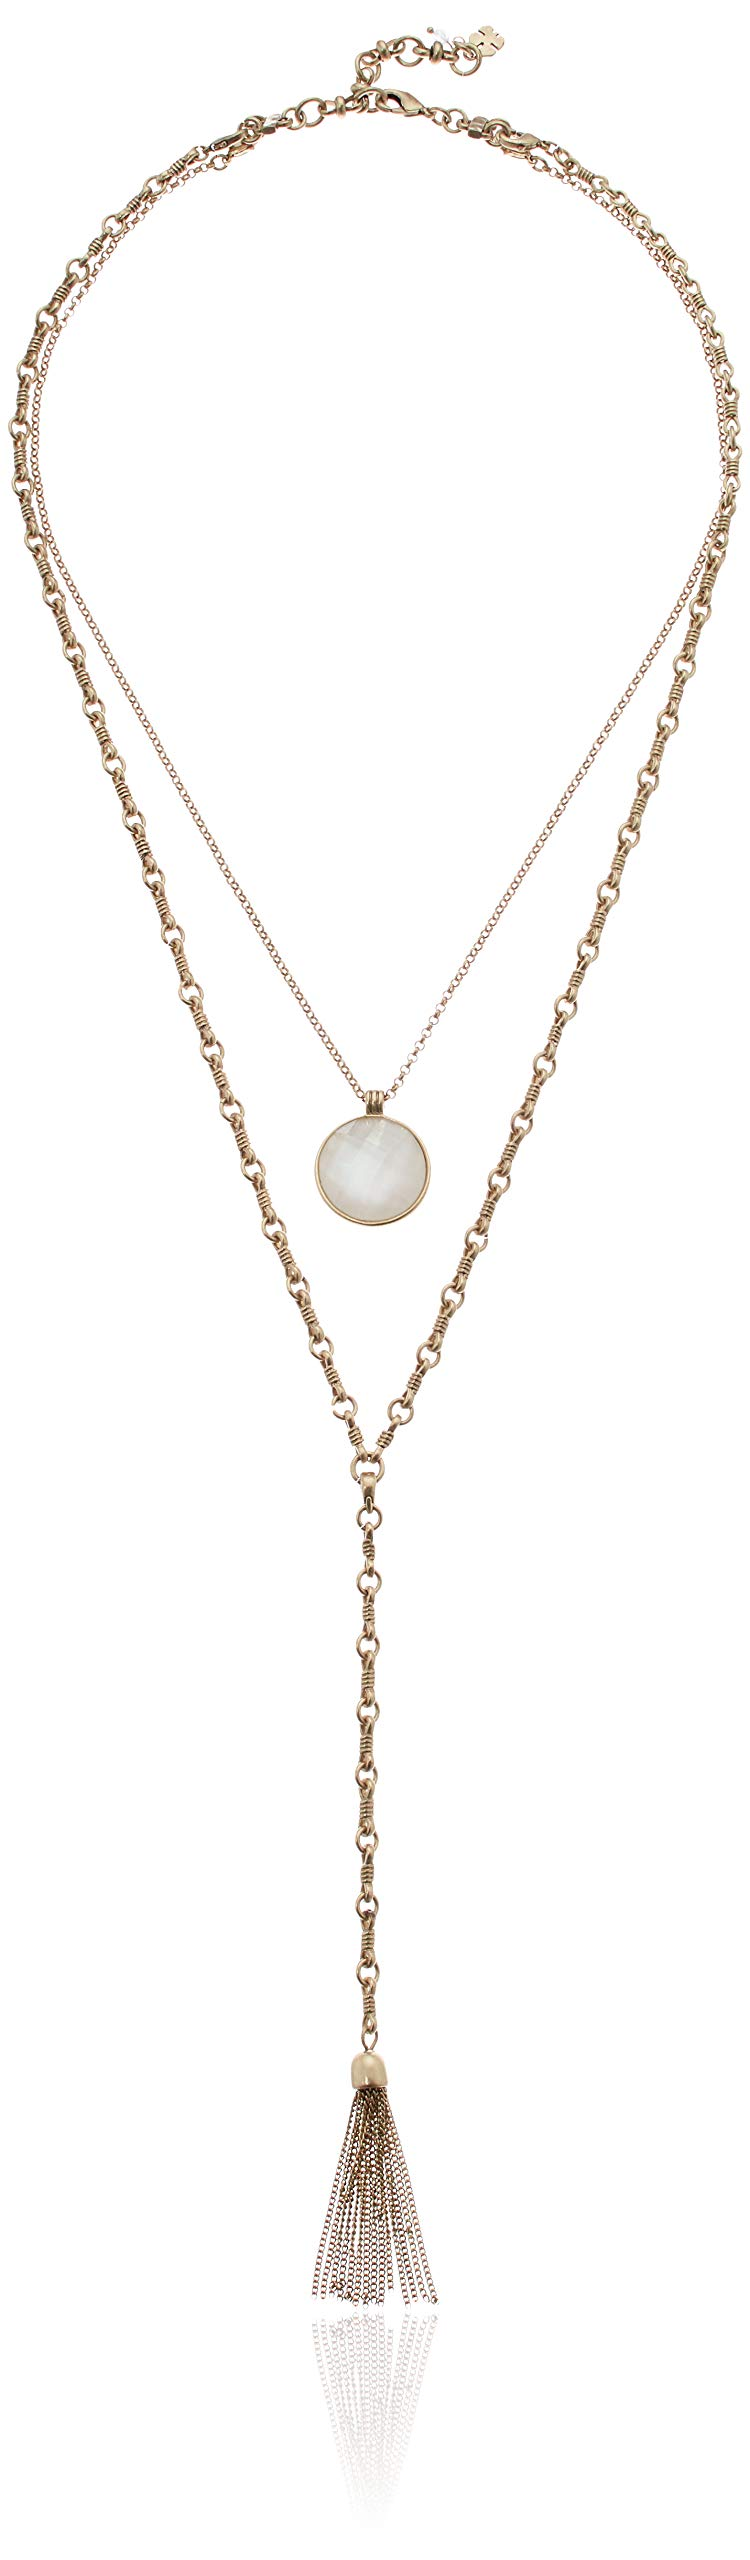 Lucky Brand Women's Layer Mother of Pearl Y Shaped Necklace, Gold, One Size